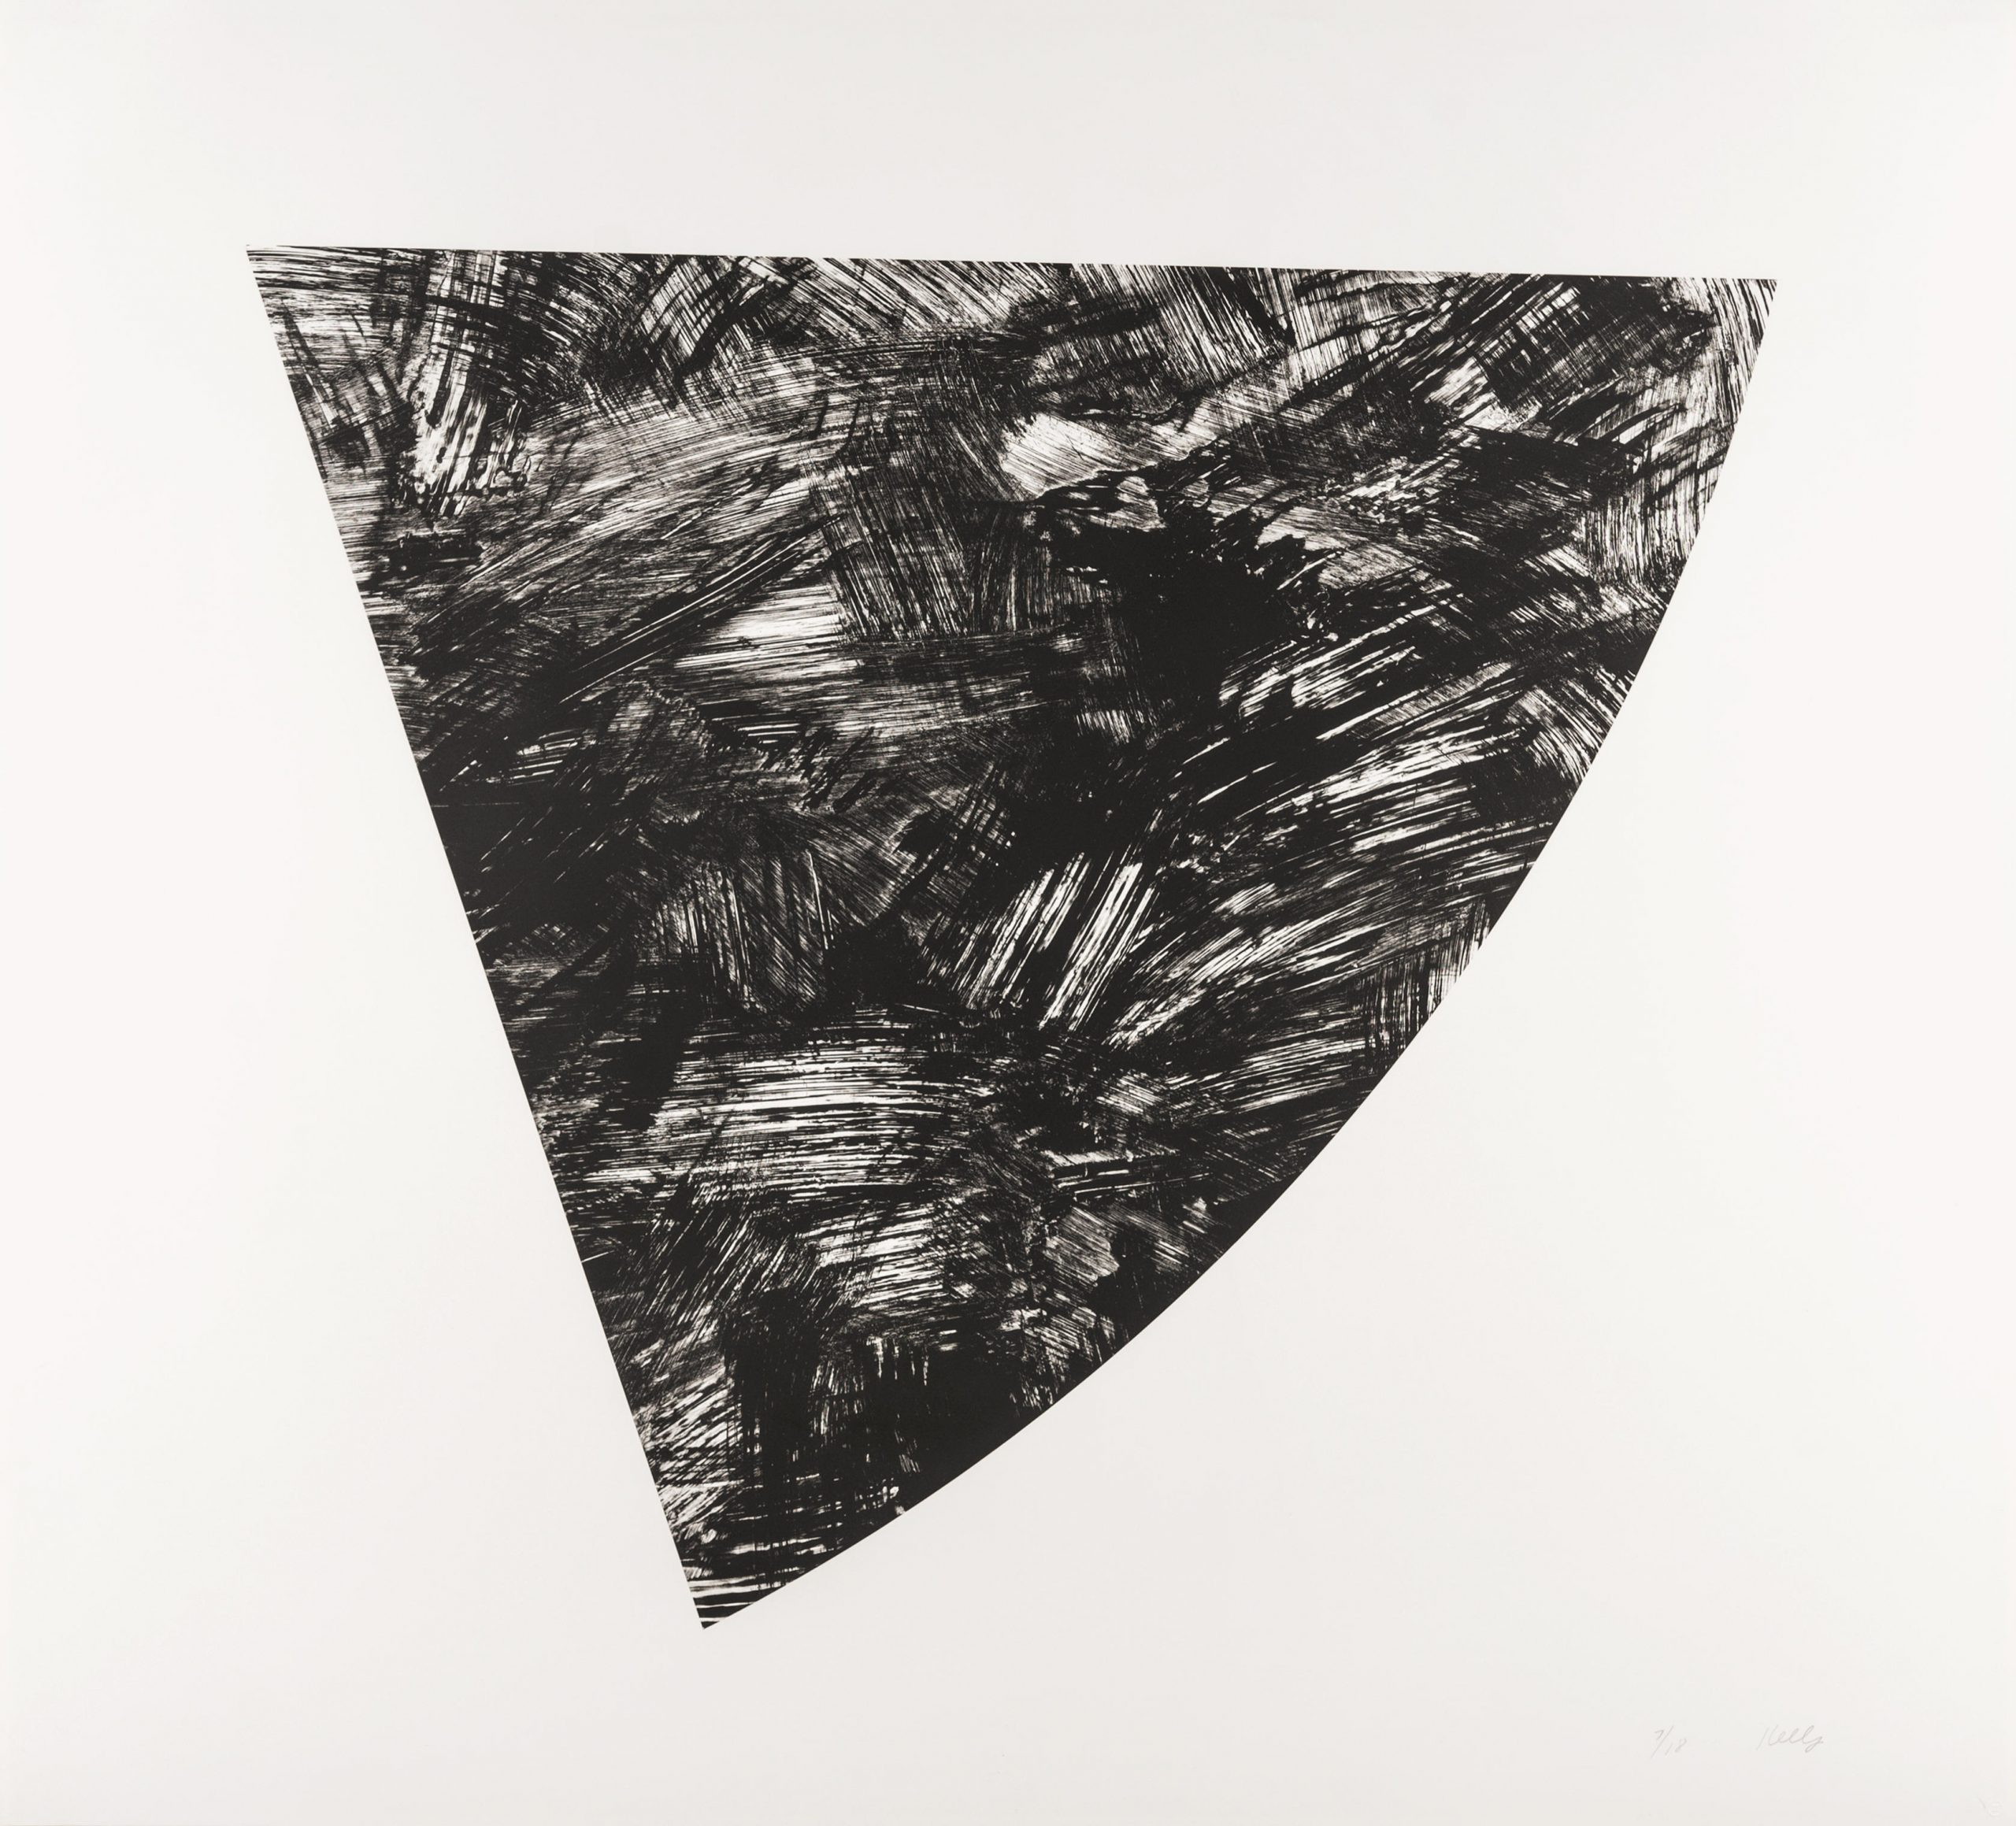 Untitled (gray State I) by Ellsworth Kelly